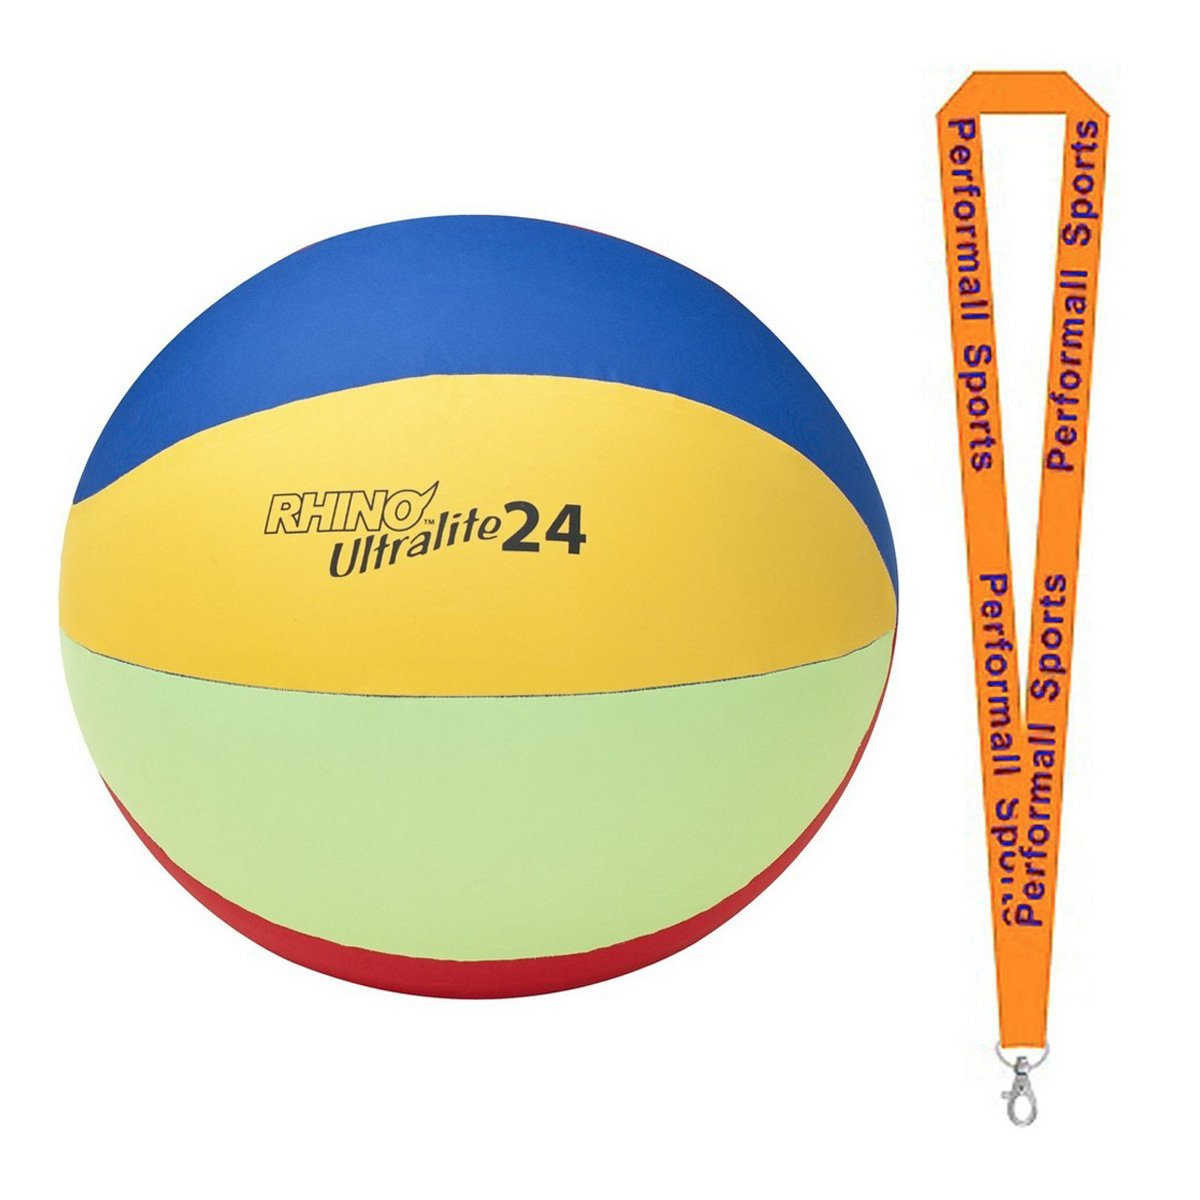 Champion Sports Bundle: Cage Ball Replacement Ultra-Lite Cover Assorted Colors and Sizes with 1 Performall Lanyard